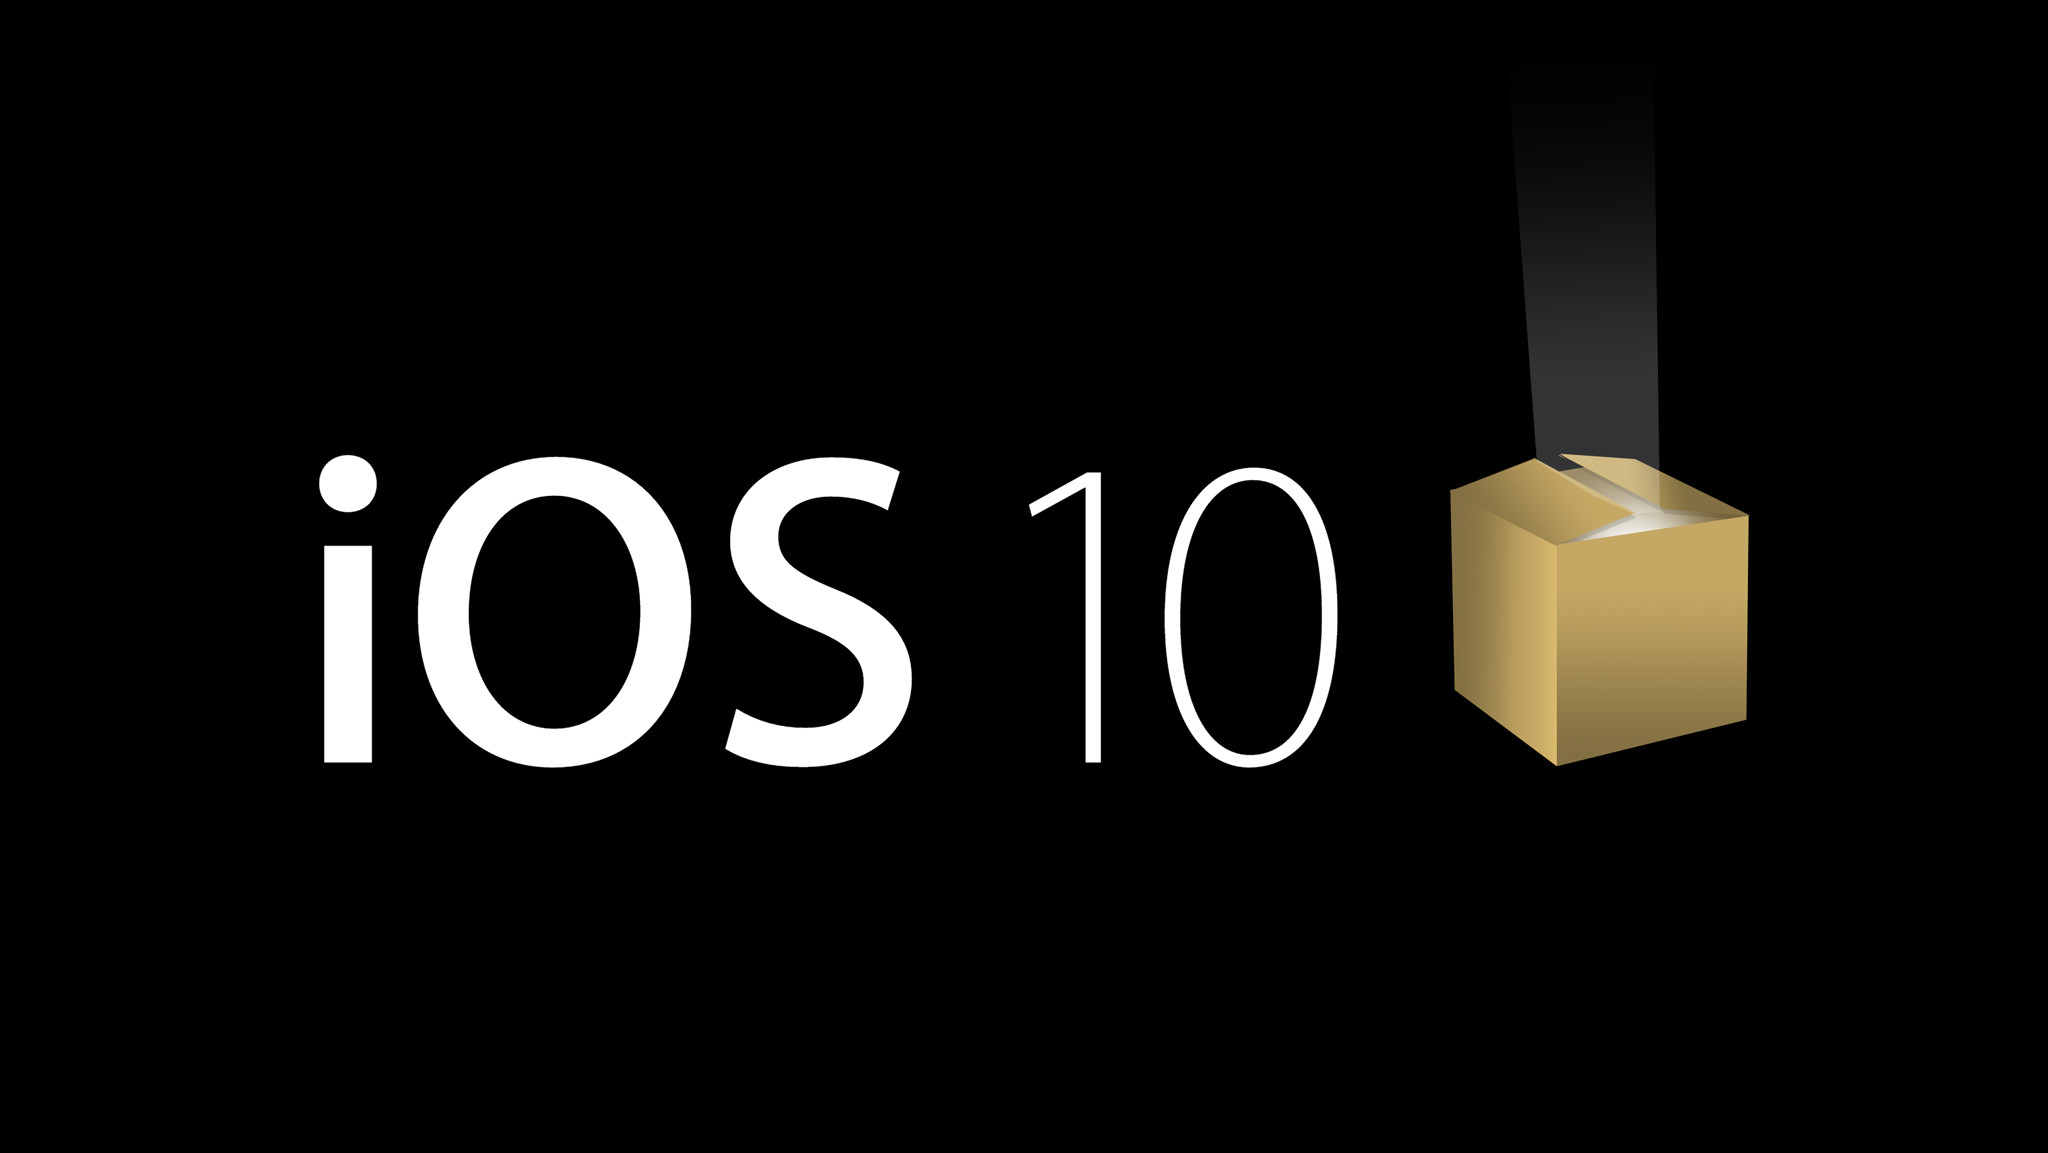 All The Hidden, Awesome Stuff In iOS 10 That Apple Didn't Announce